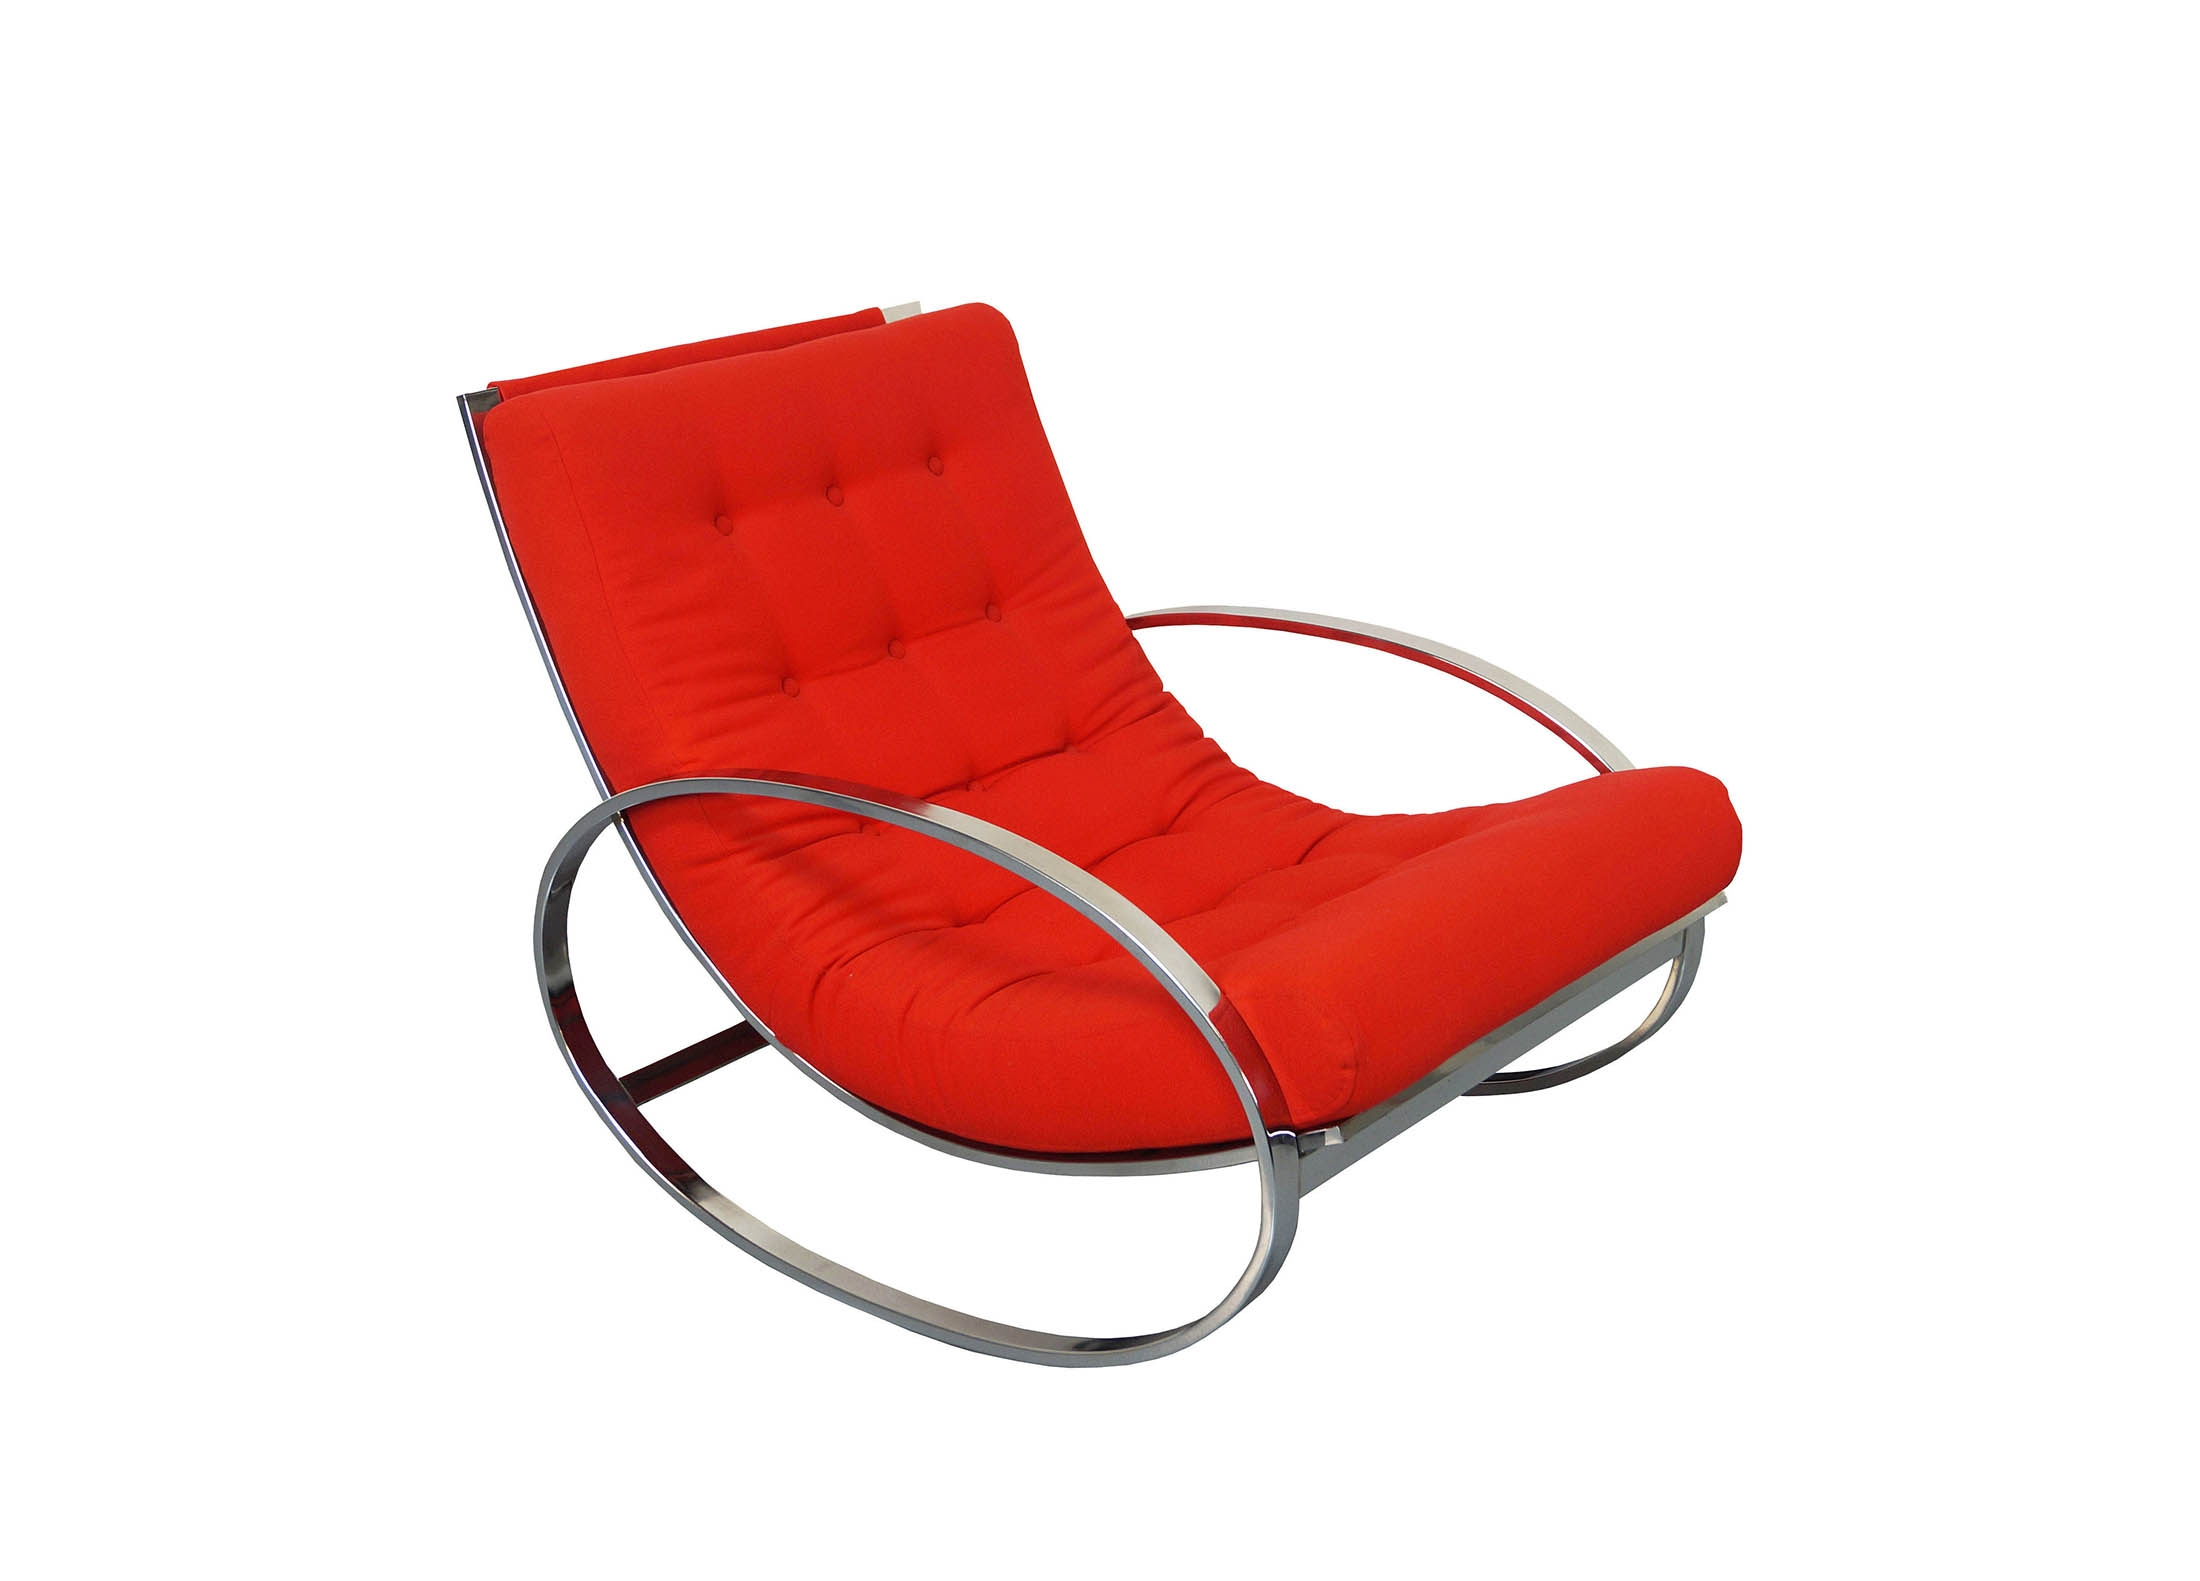 Vintage Chrome Rocking Chair by Renato Zevi